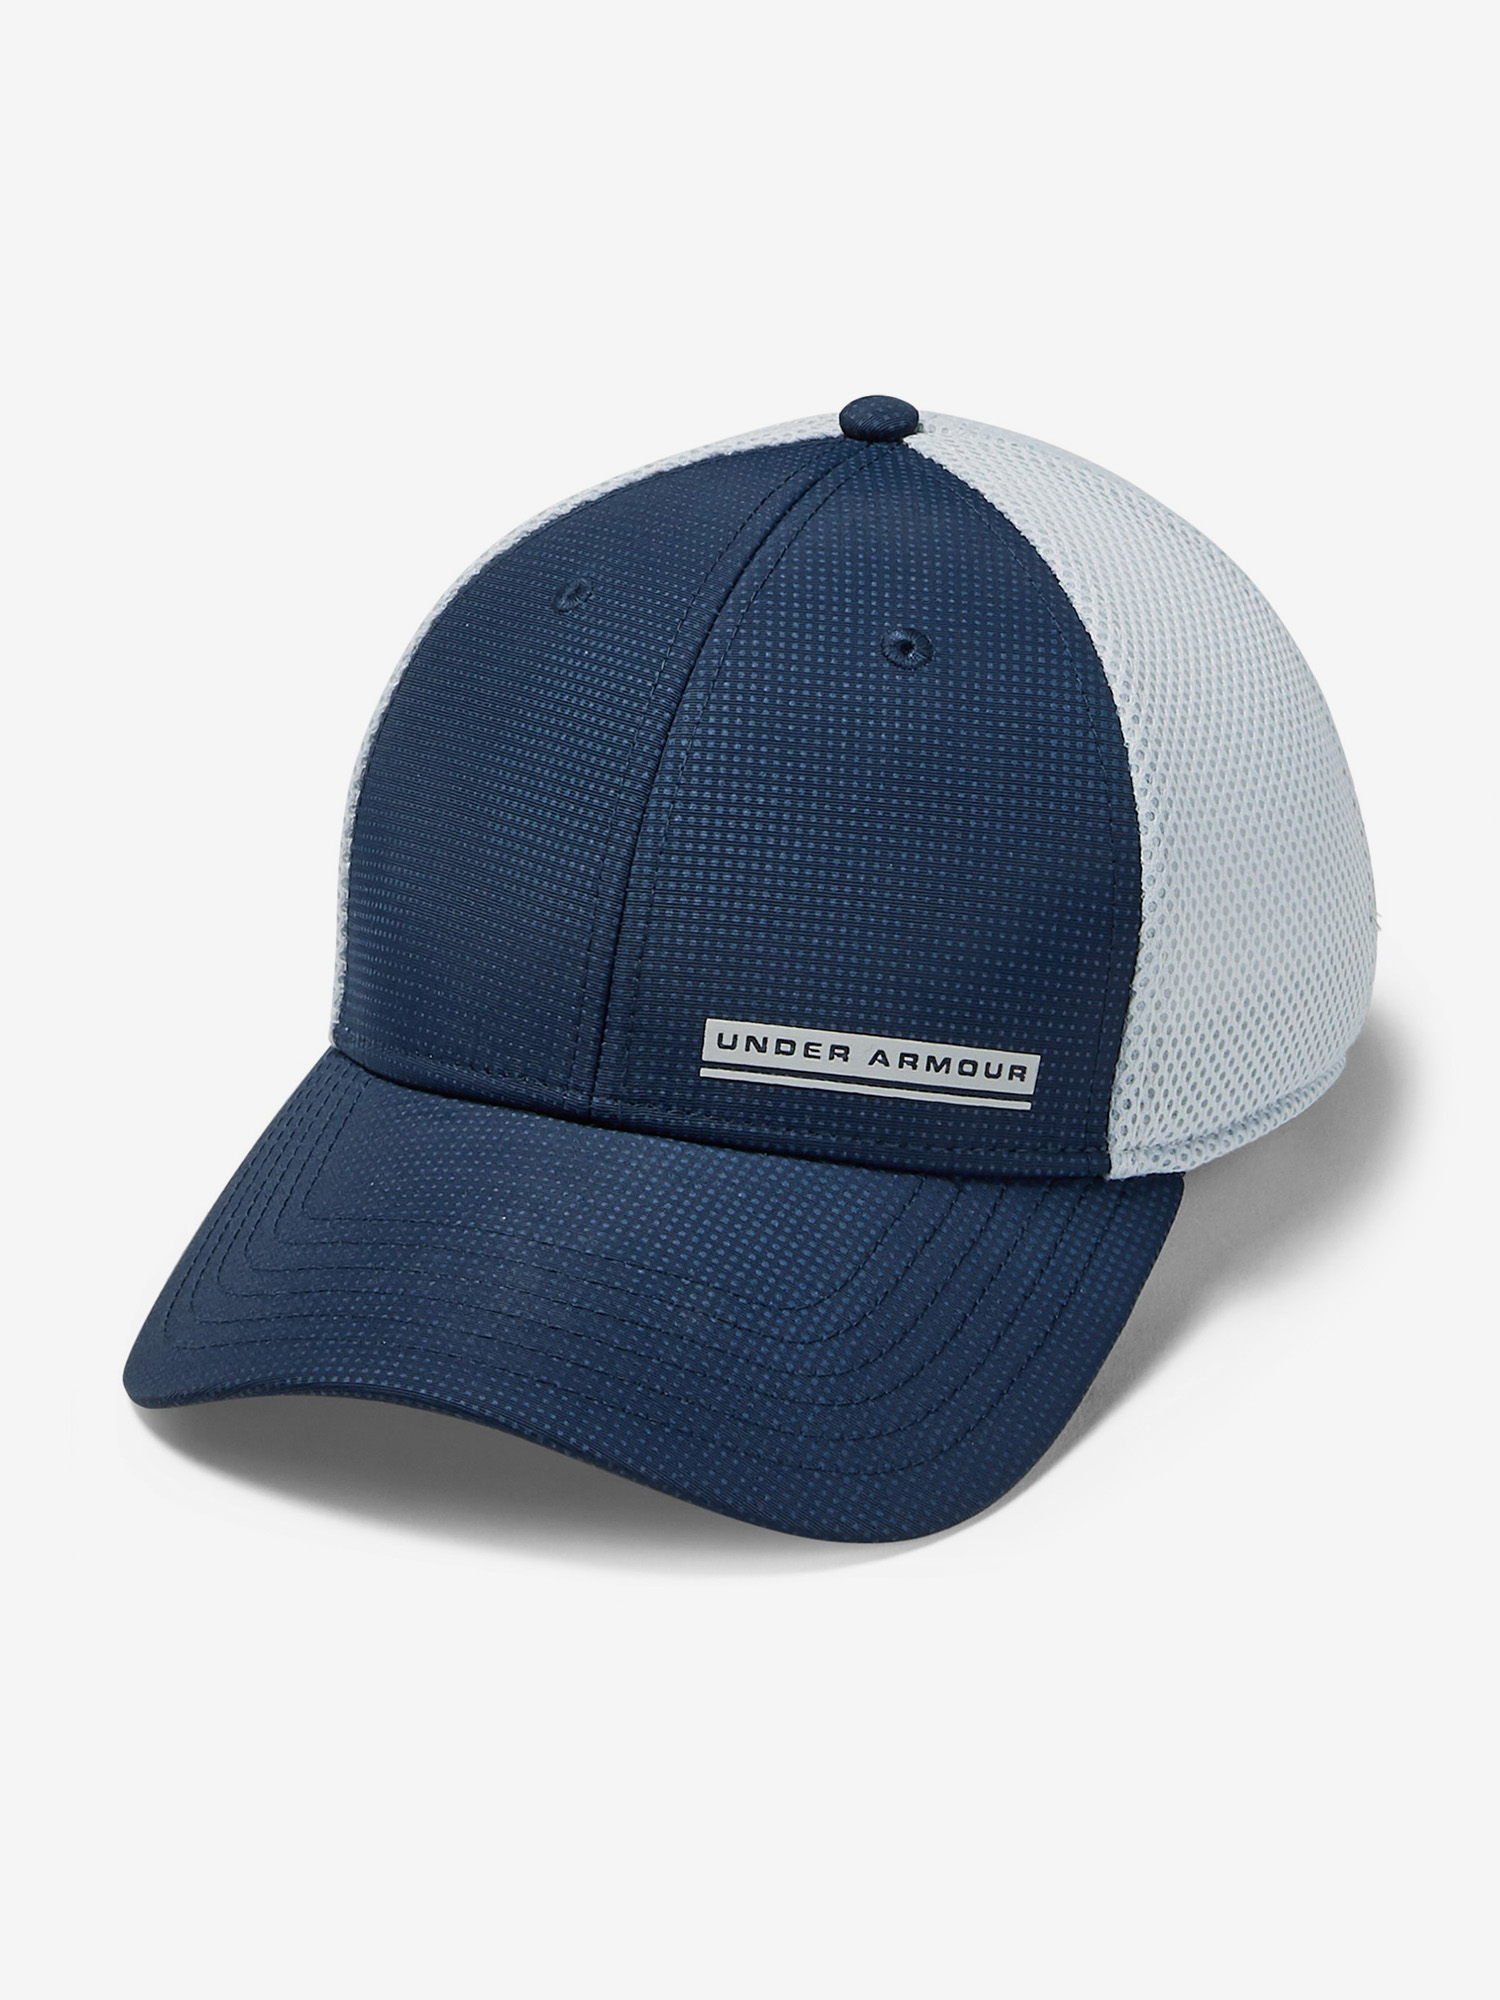 Diariamente vistazo Múltiple  Kšiltovka Under Armour Men'S Train Spacer Mesh Cap-Nvy Modrá |  SwagWear.cz